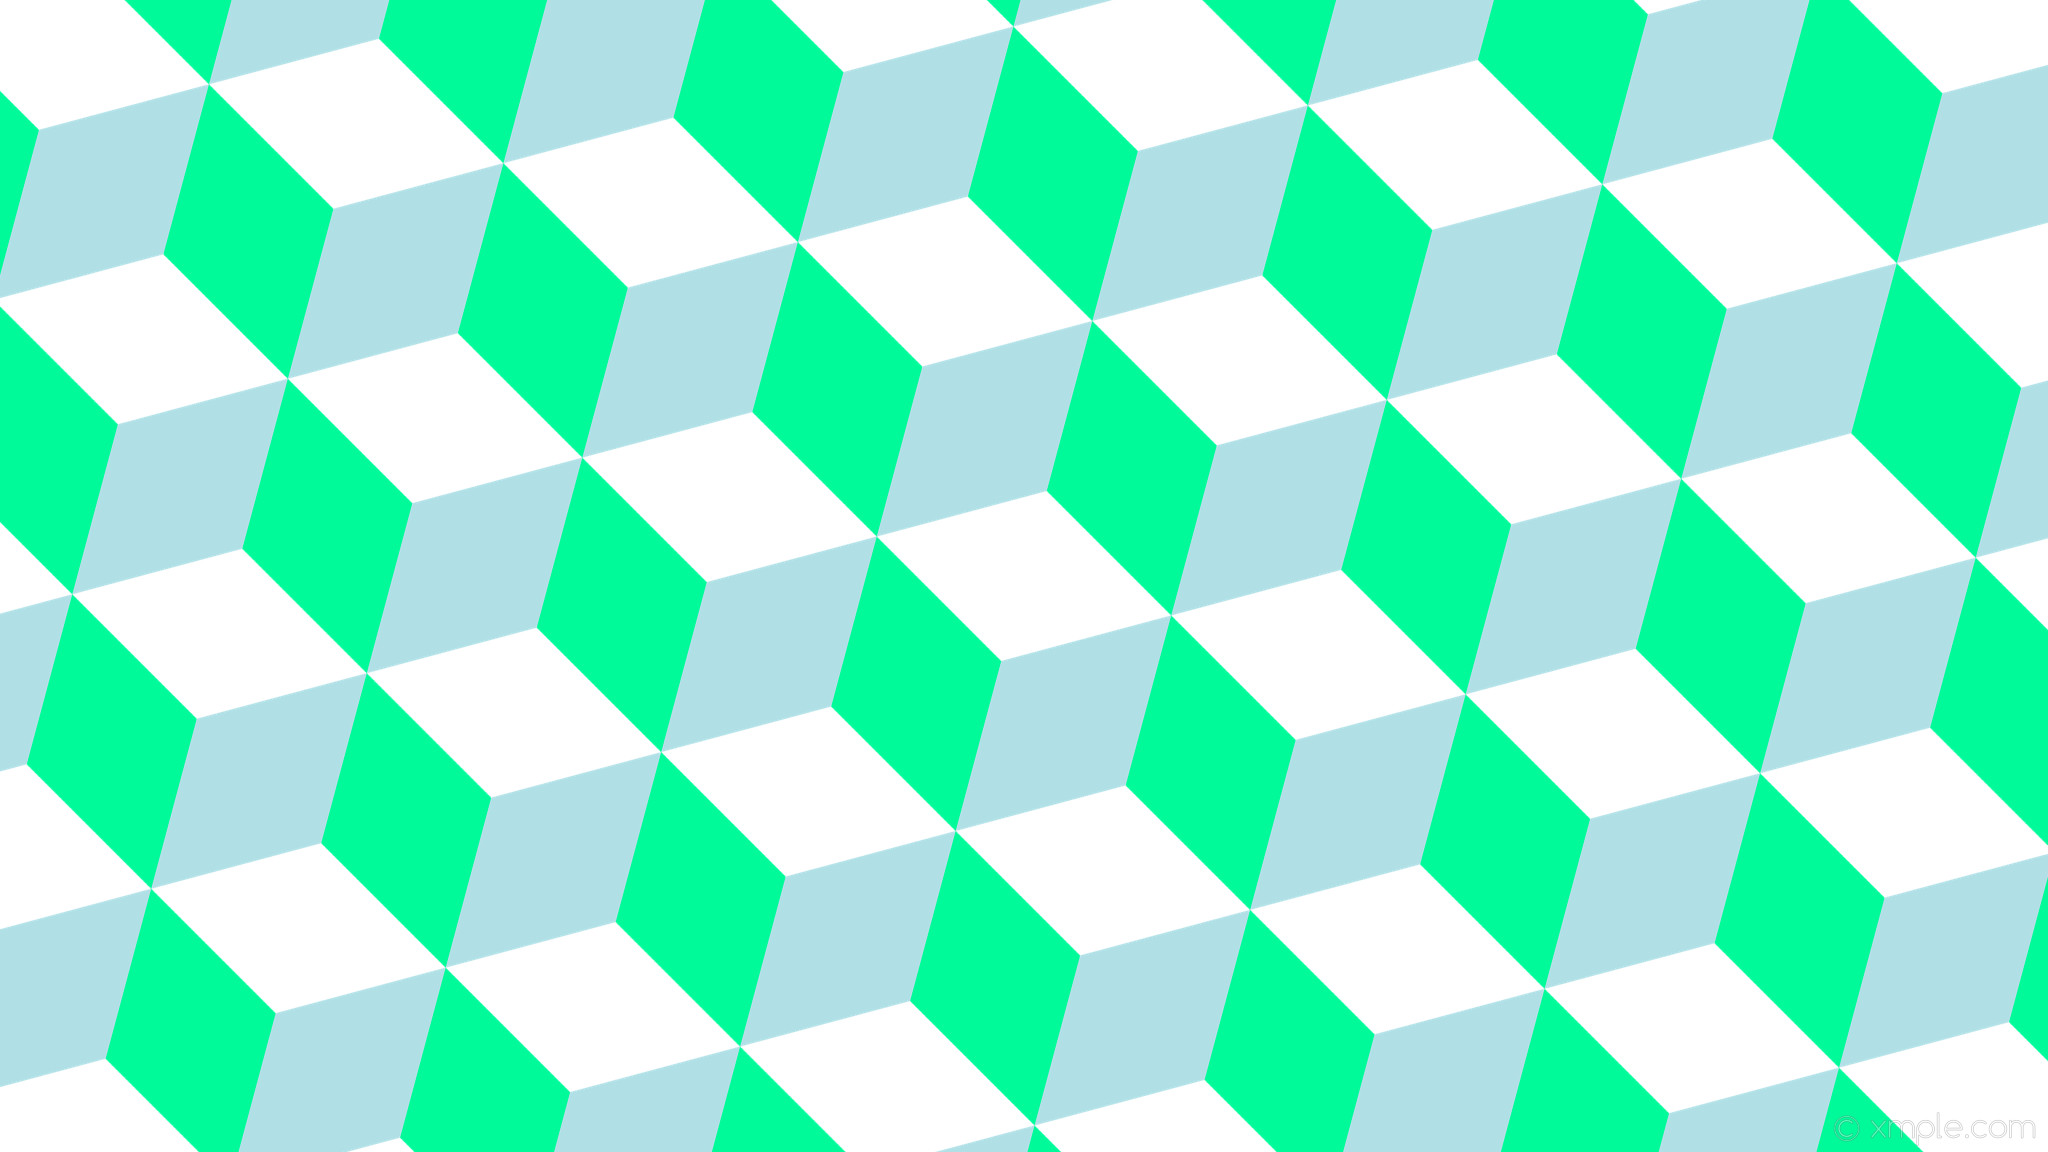 2048x1152 wallpaper blue green 3d cubes white medium spring green powder blue #ffffff  #00fa9a #